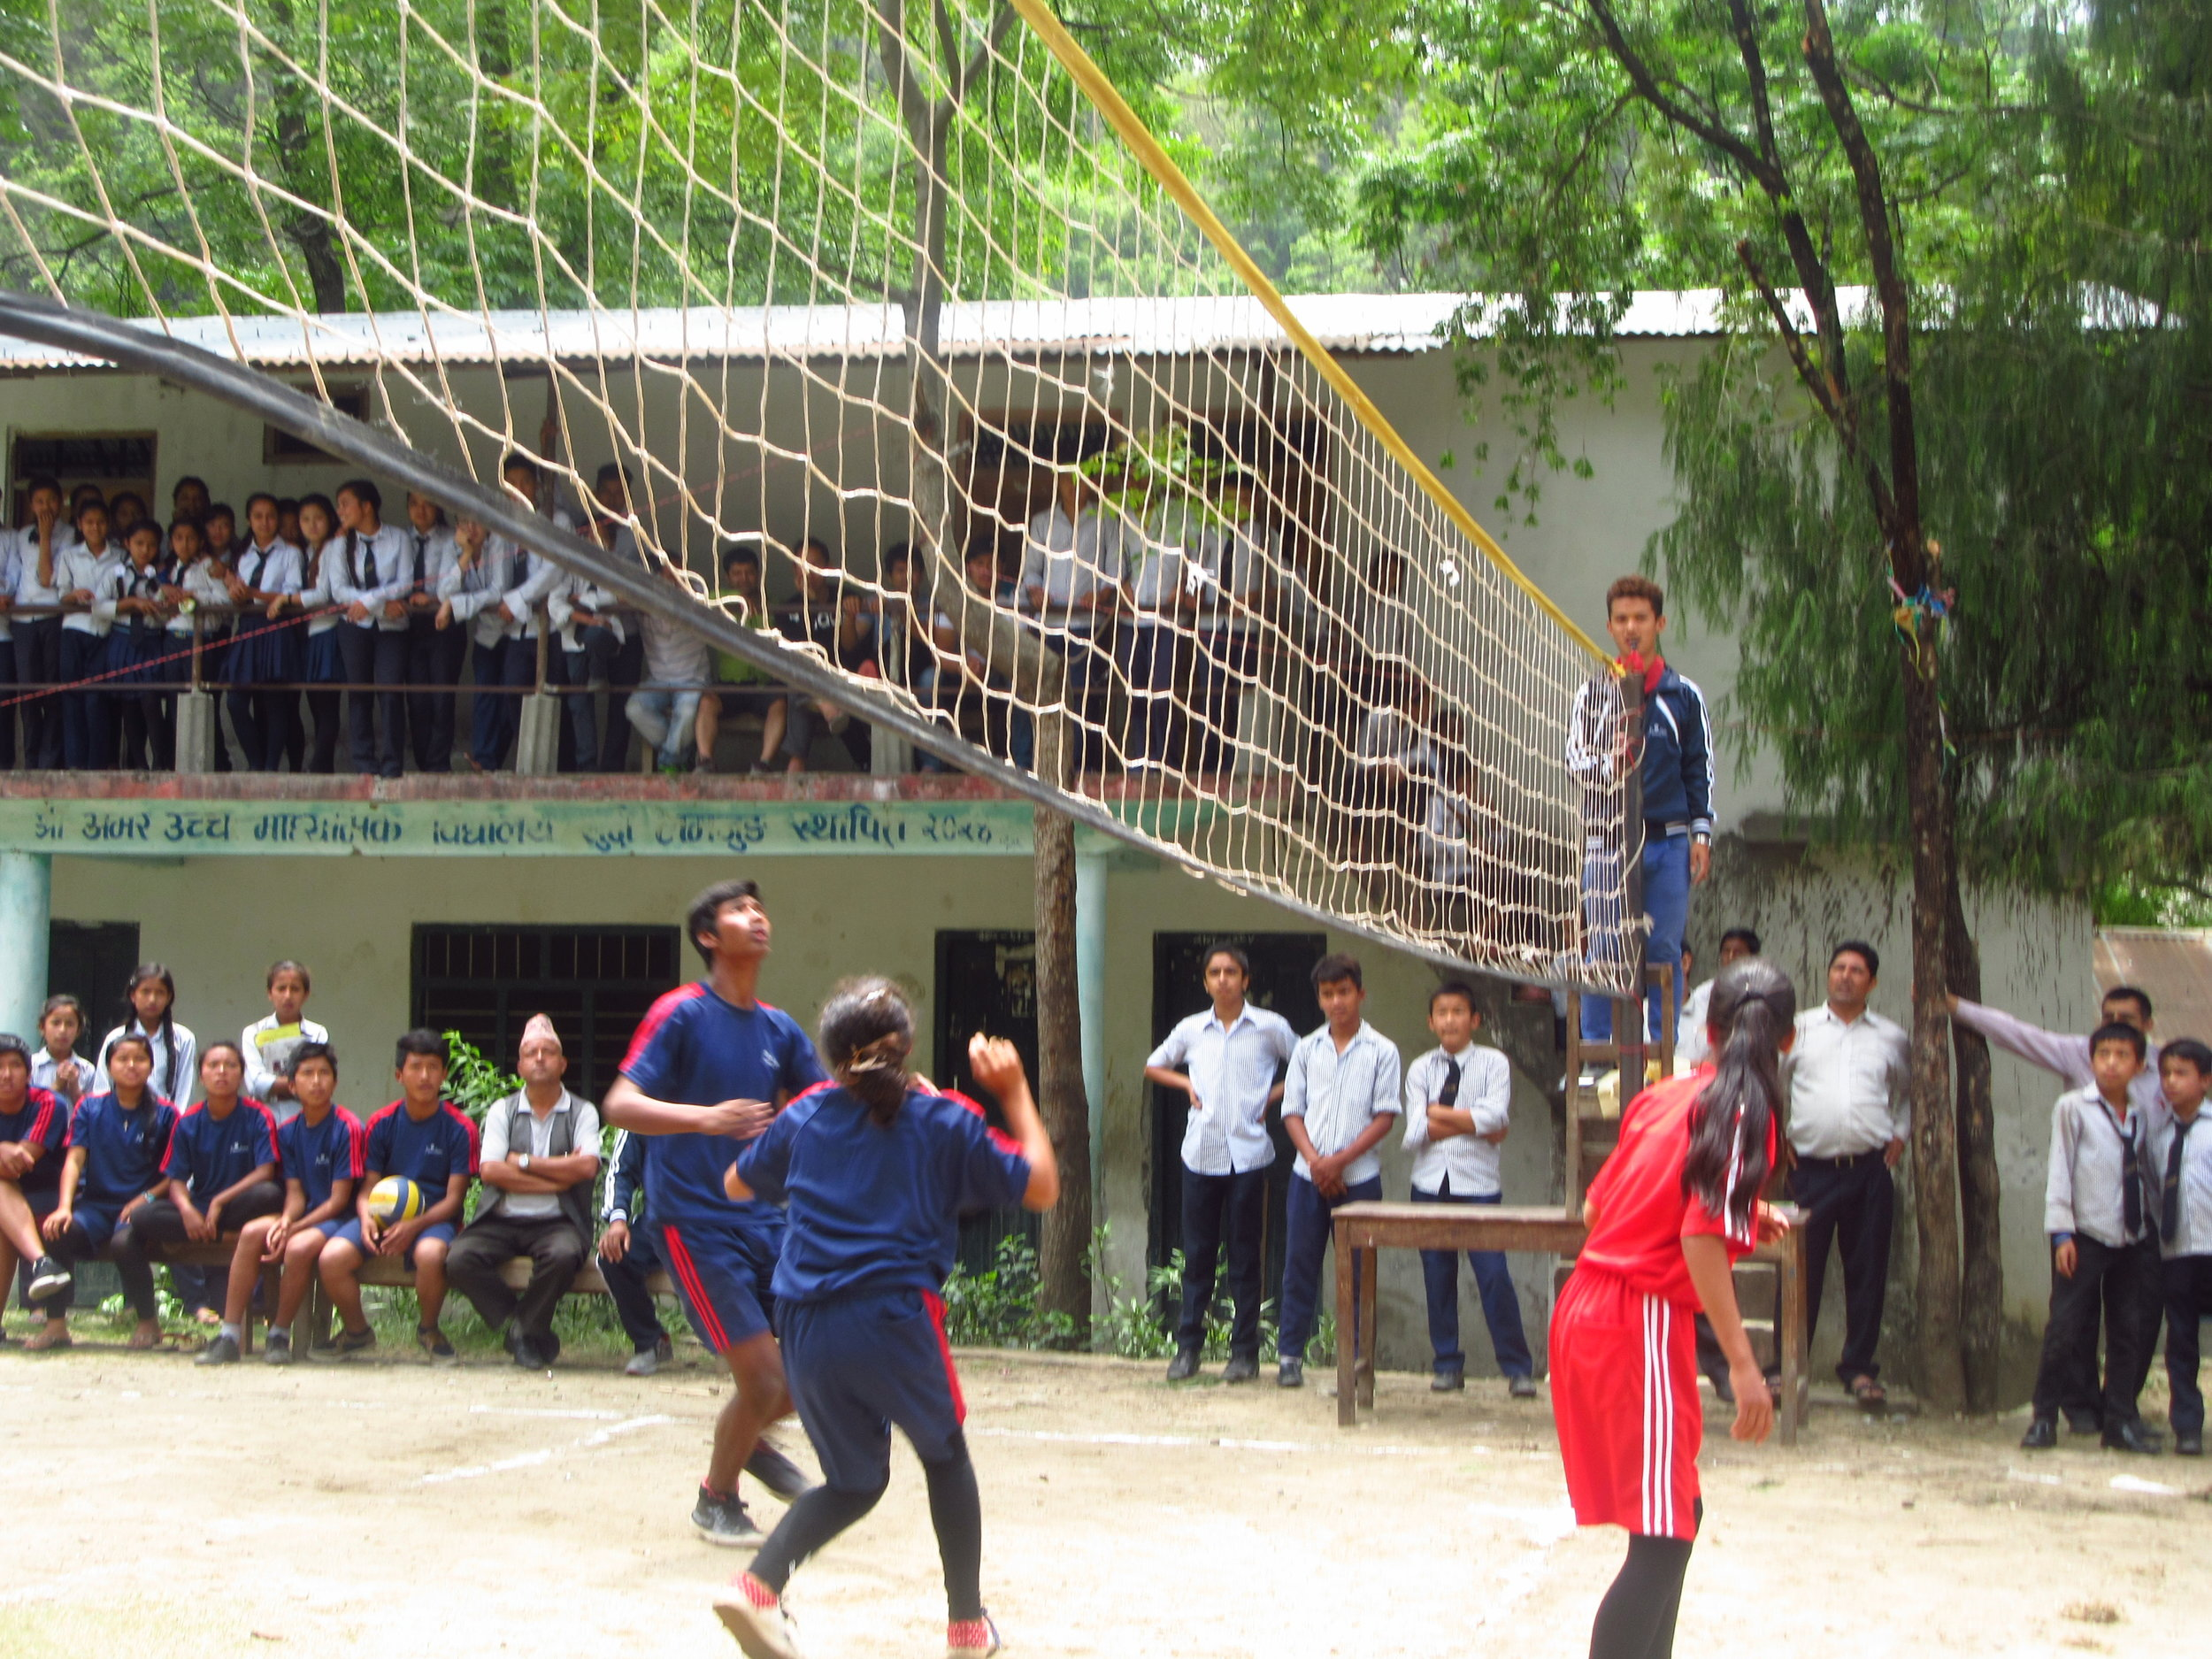 Males and females participating in the Khelaun Khelaun league in Nepal